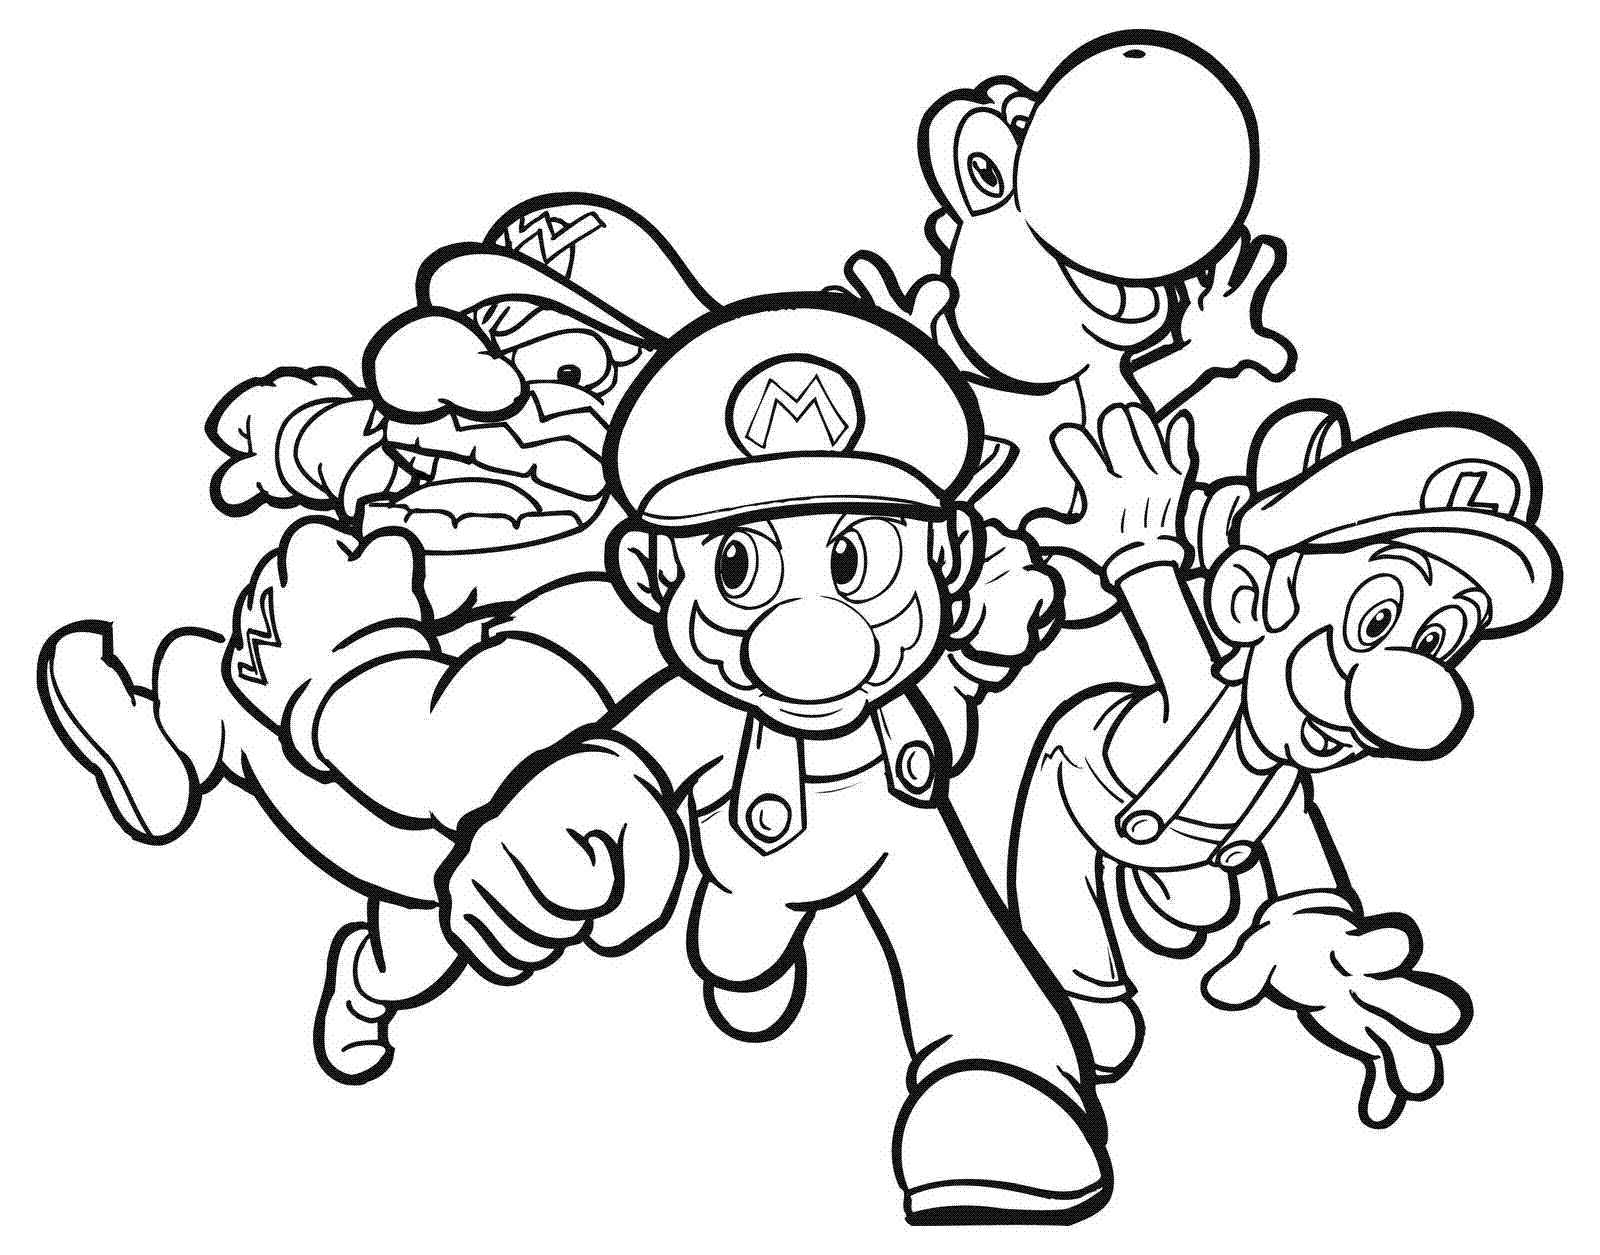 Printable Coloring Pages: May 2013